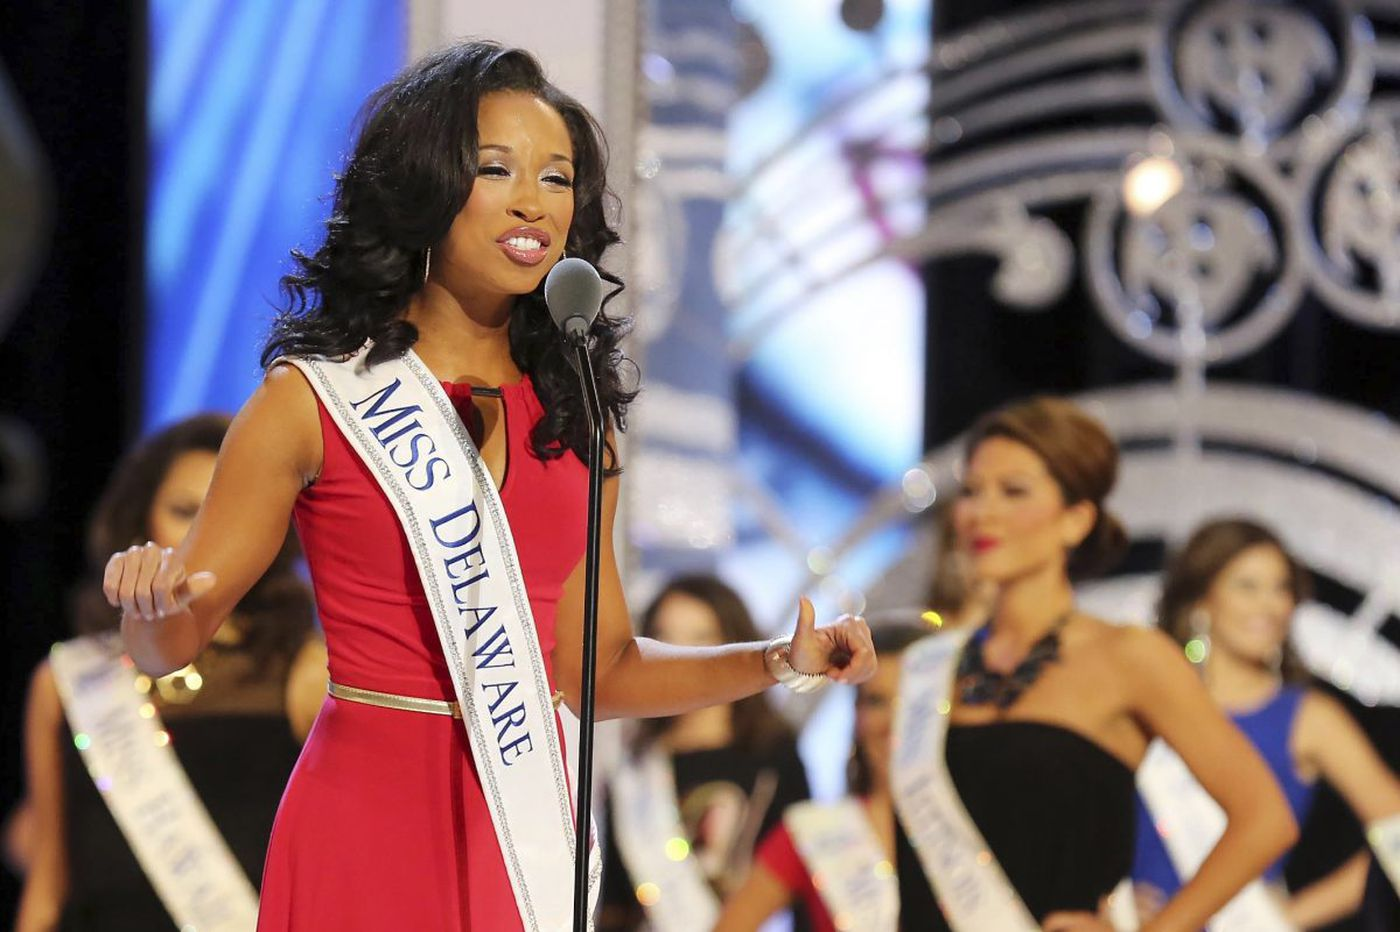 She's a Jersey girl, Temple Owl, Ph.D. candidate, and, now, Miss Black America